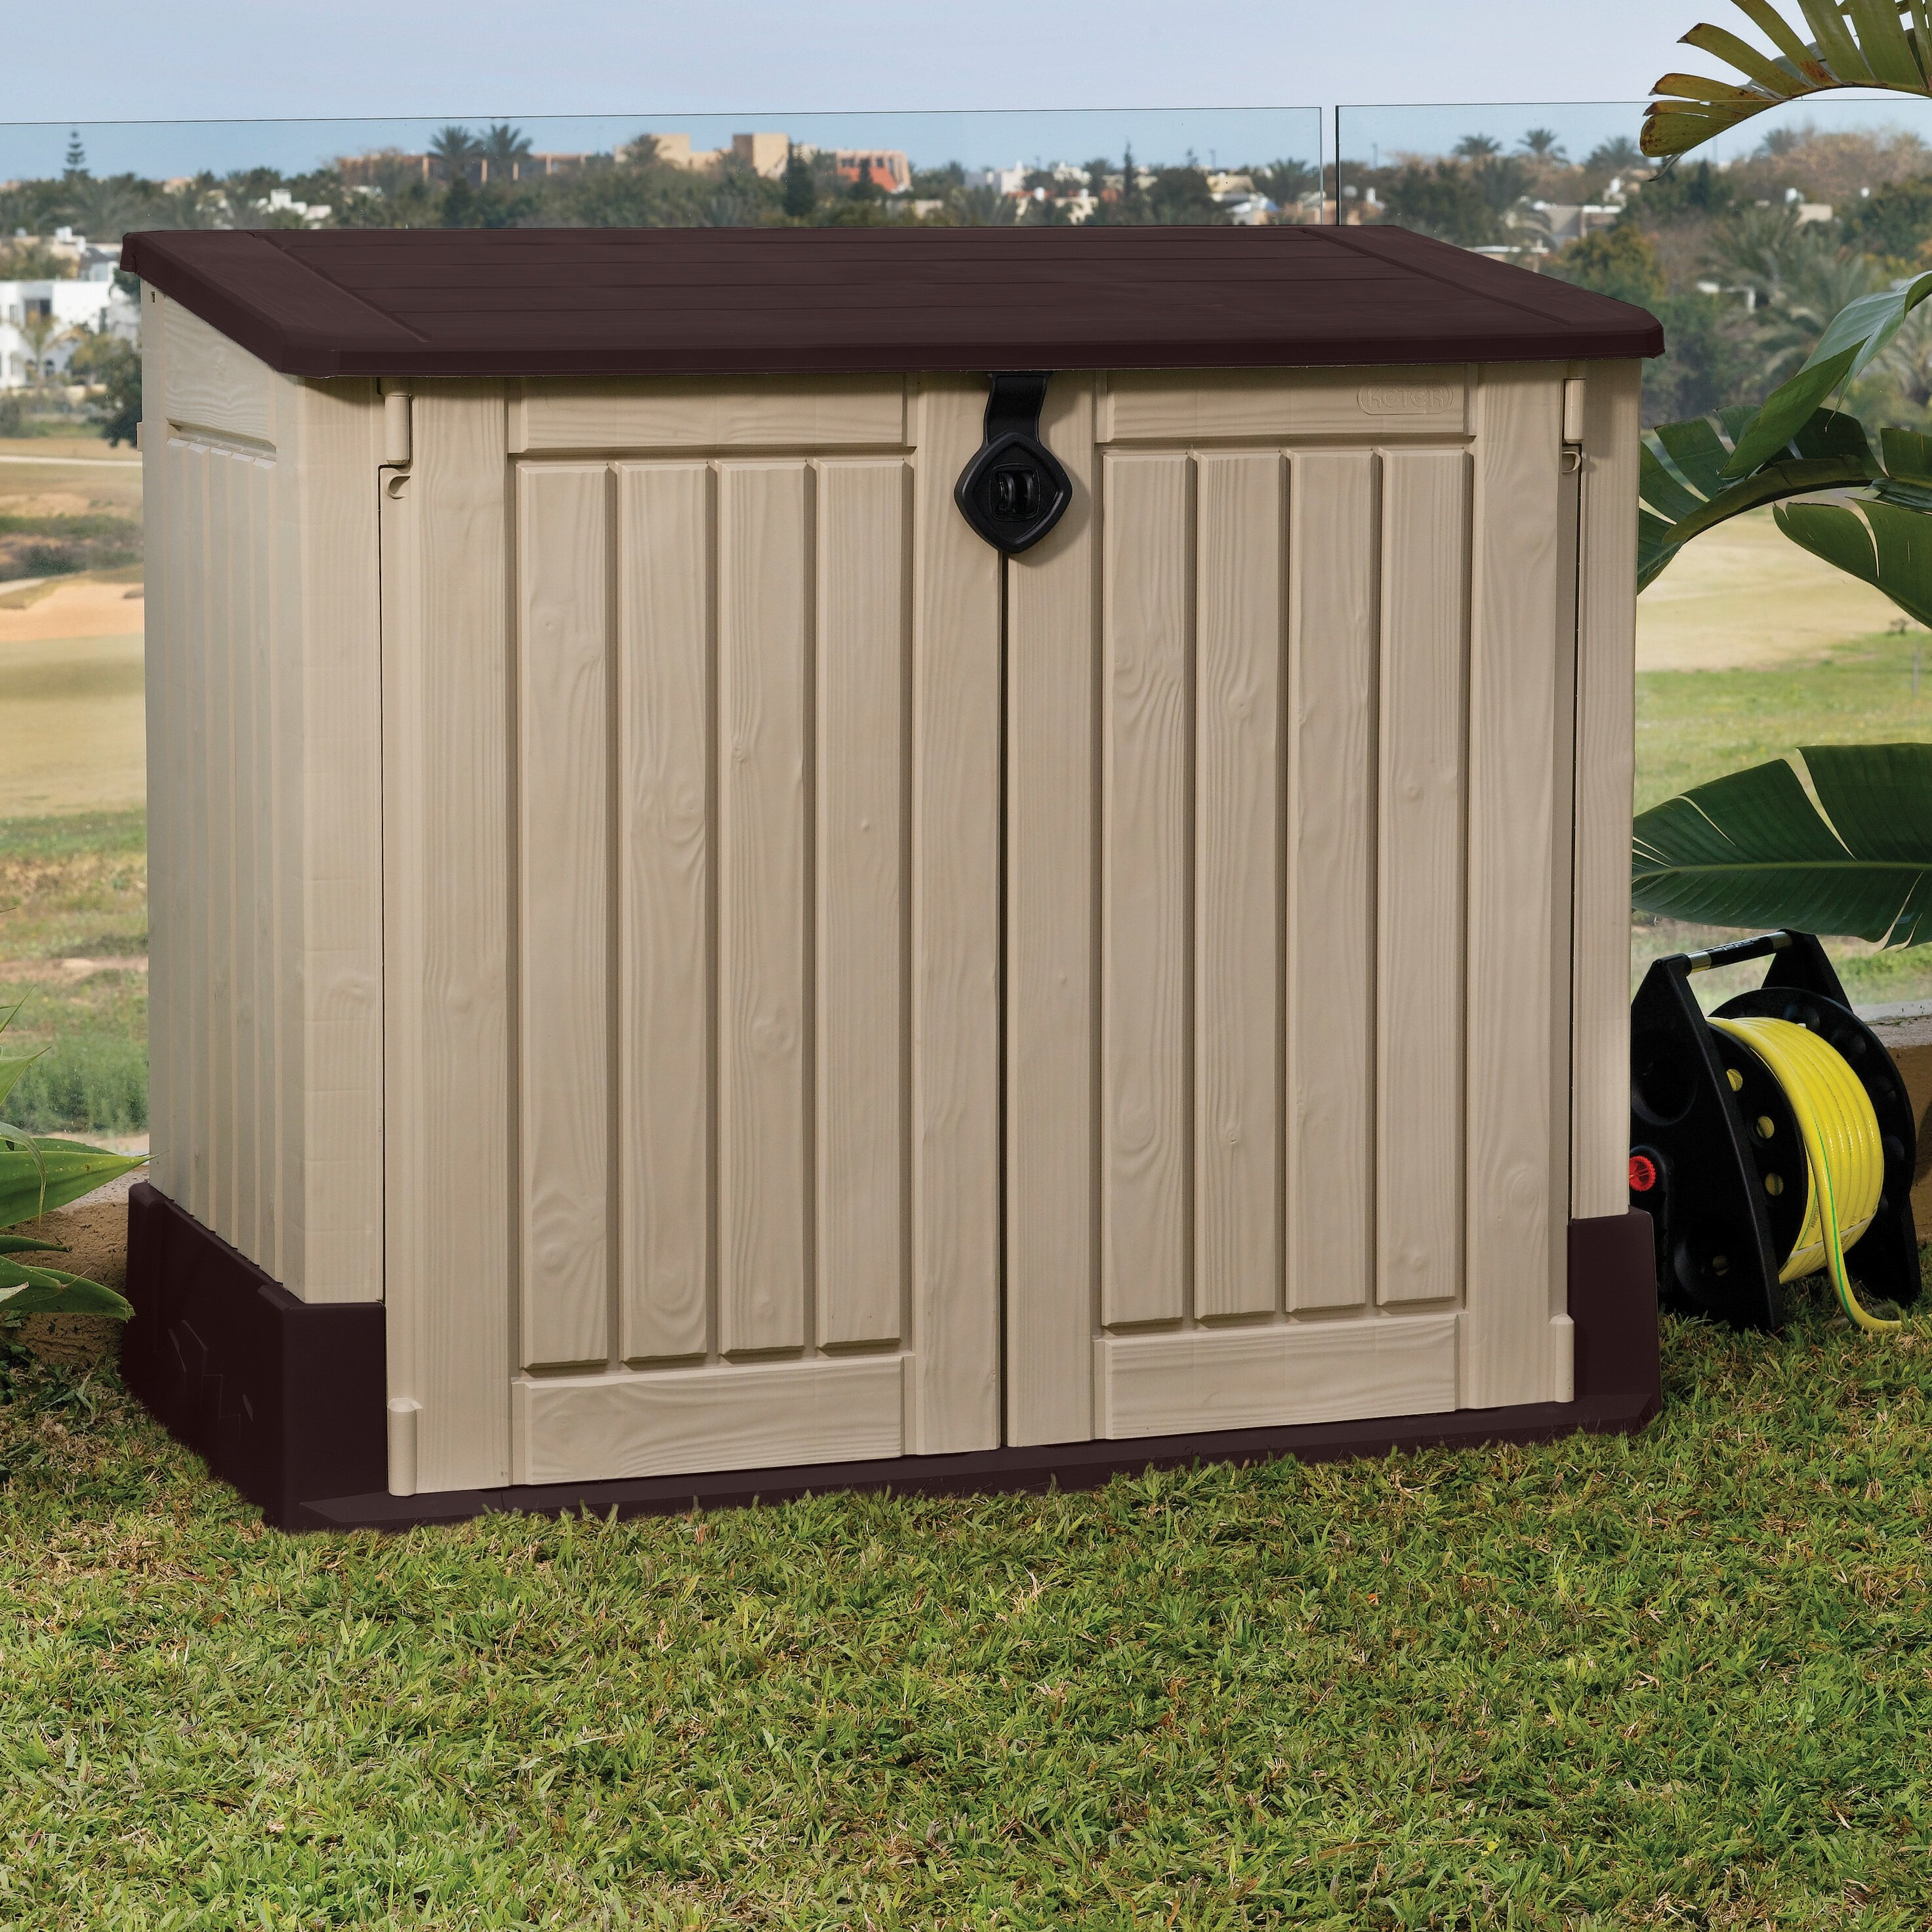 shed coop canada a sheds buy chicken image